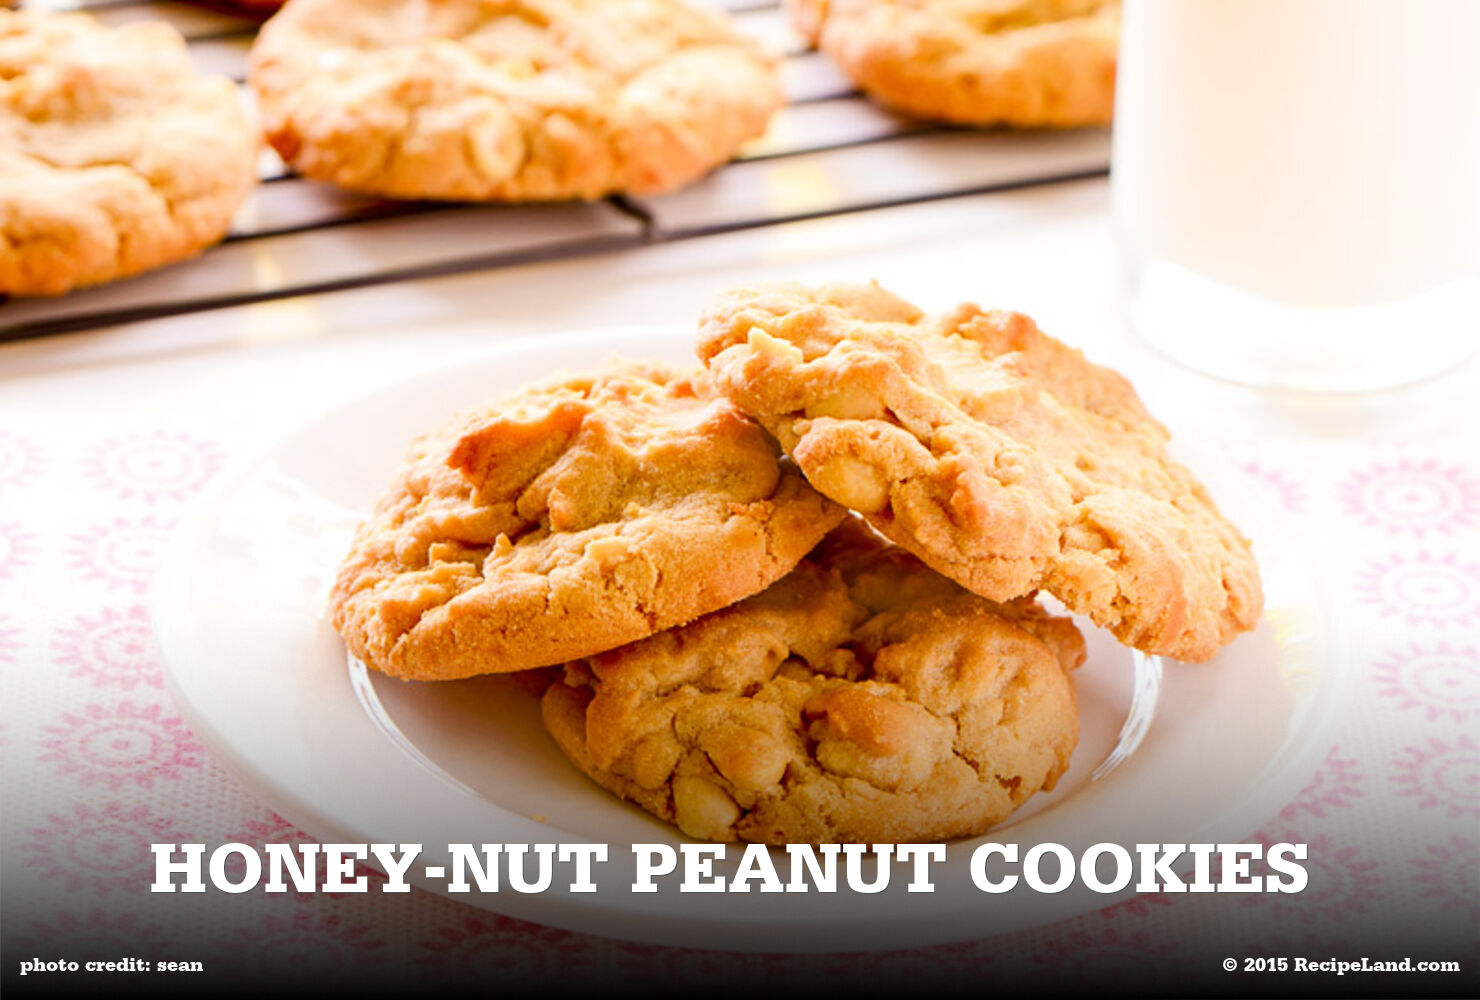 Honey-Nut Peanut Cookies